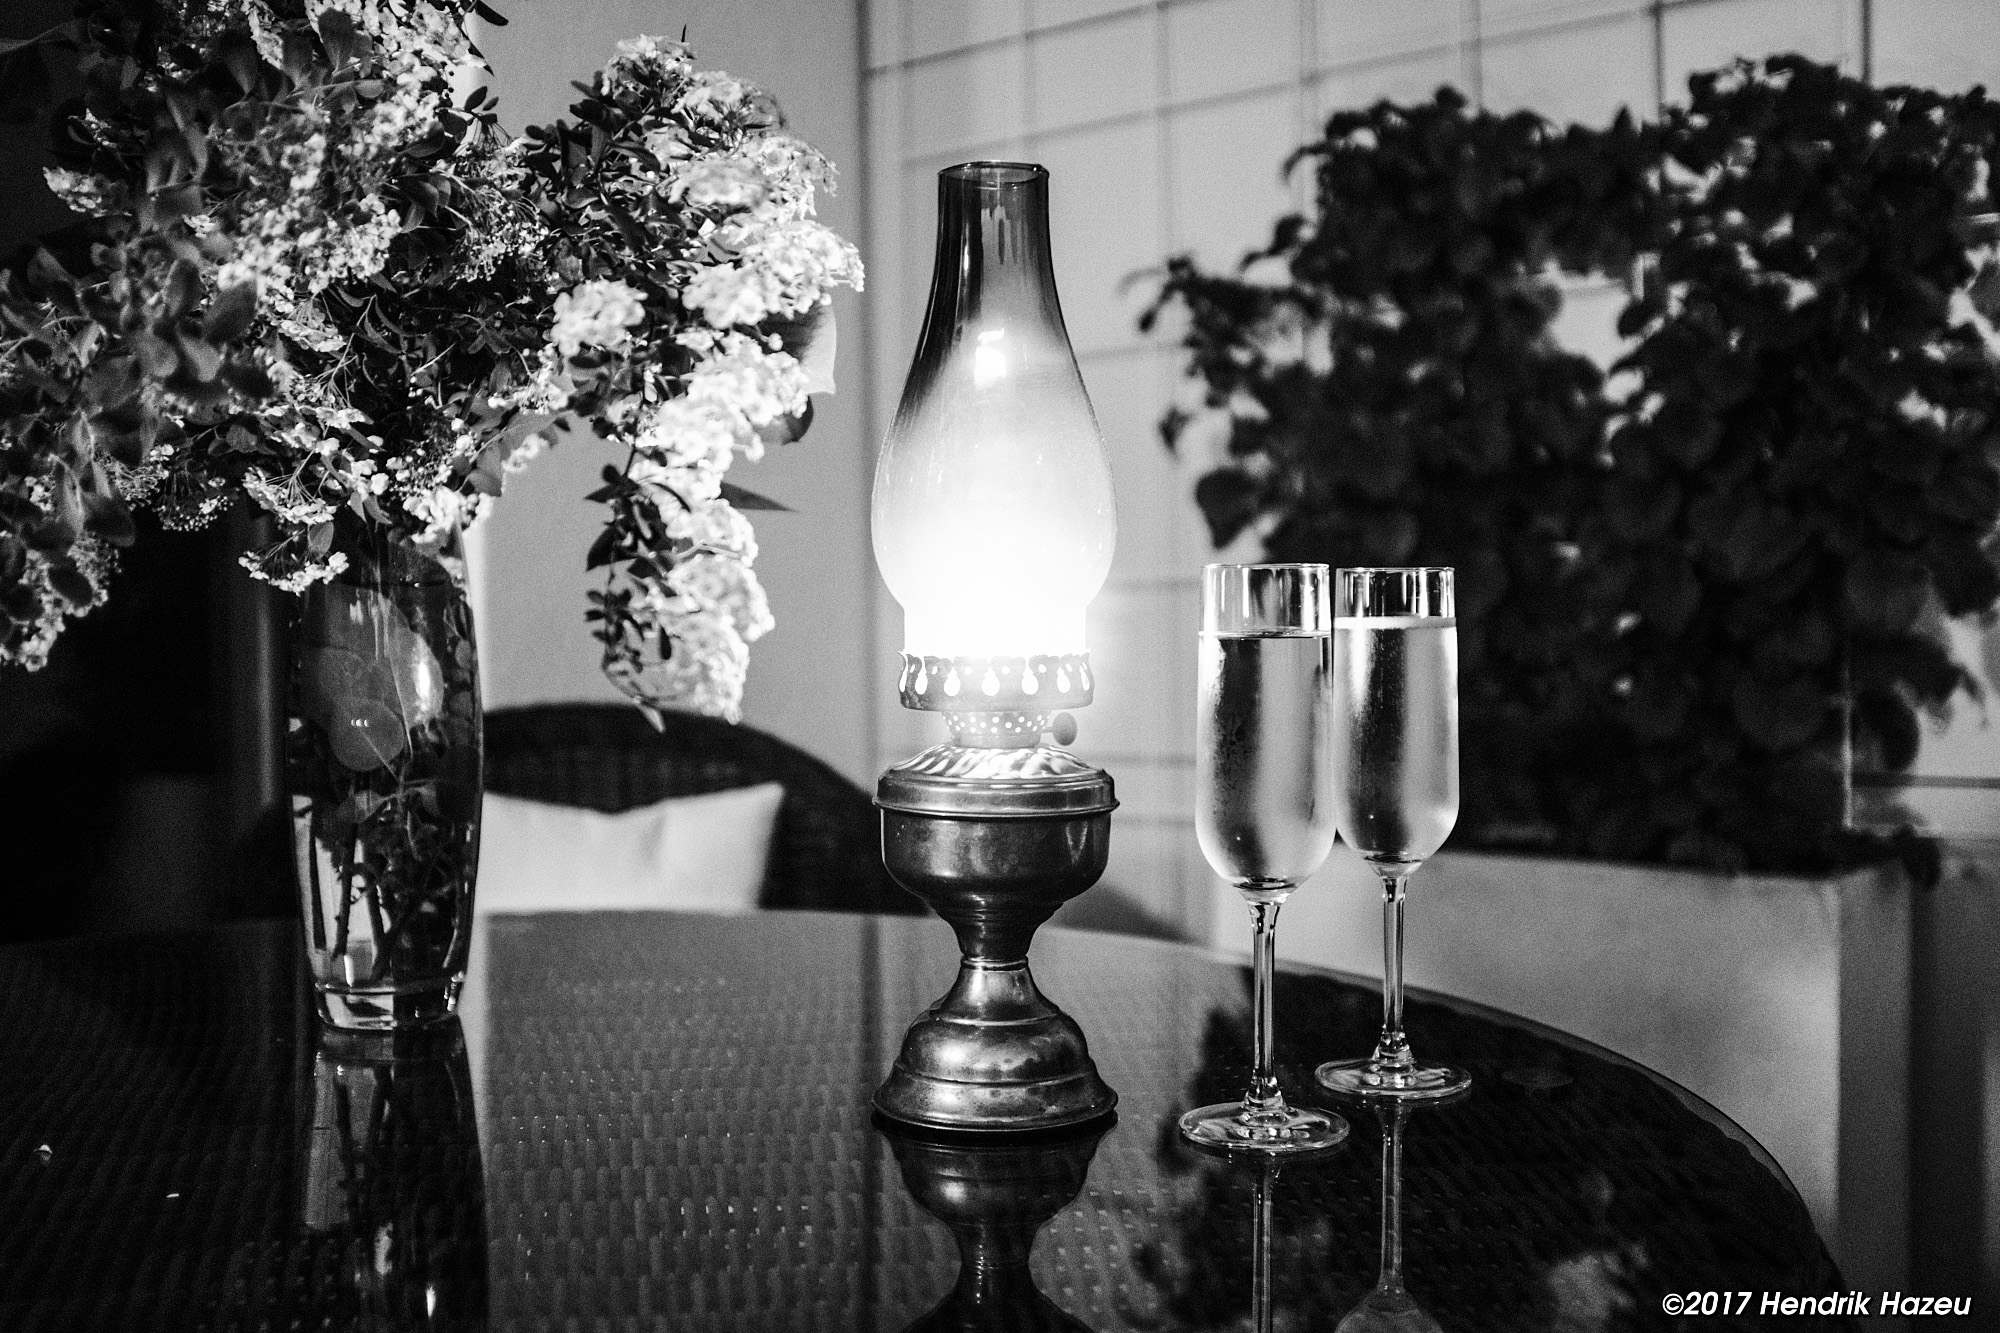 Evening drinks, with Fuji X100F, 23 mm / f2 @f2, 1/25 sec, +1EV compensation on ACROS-Y